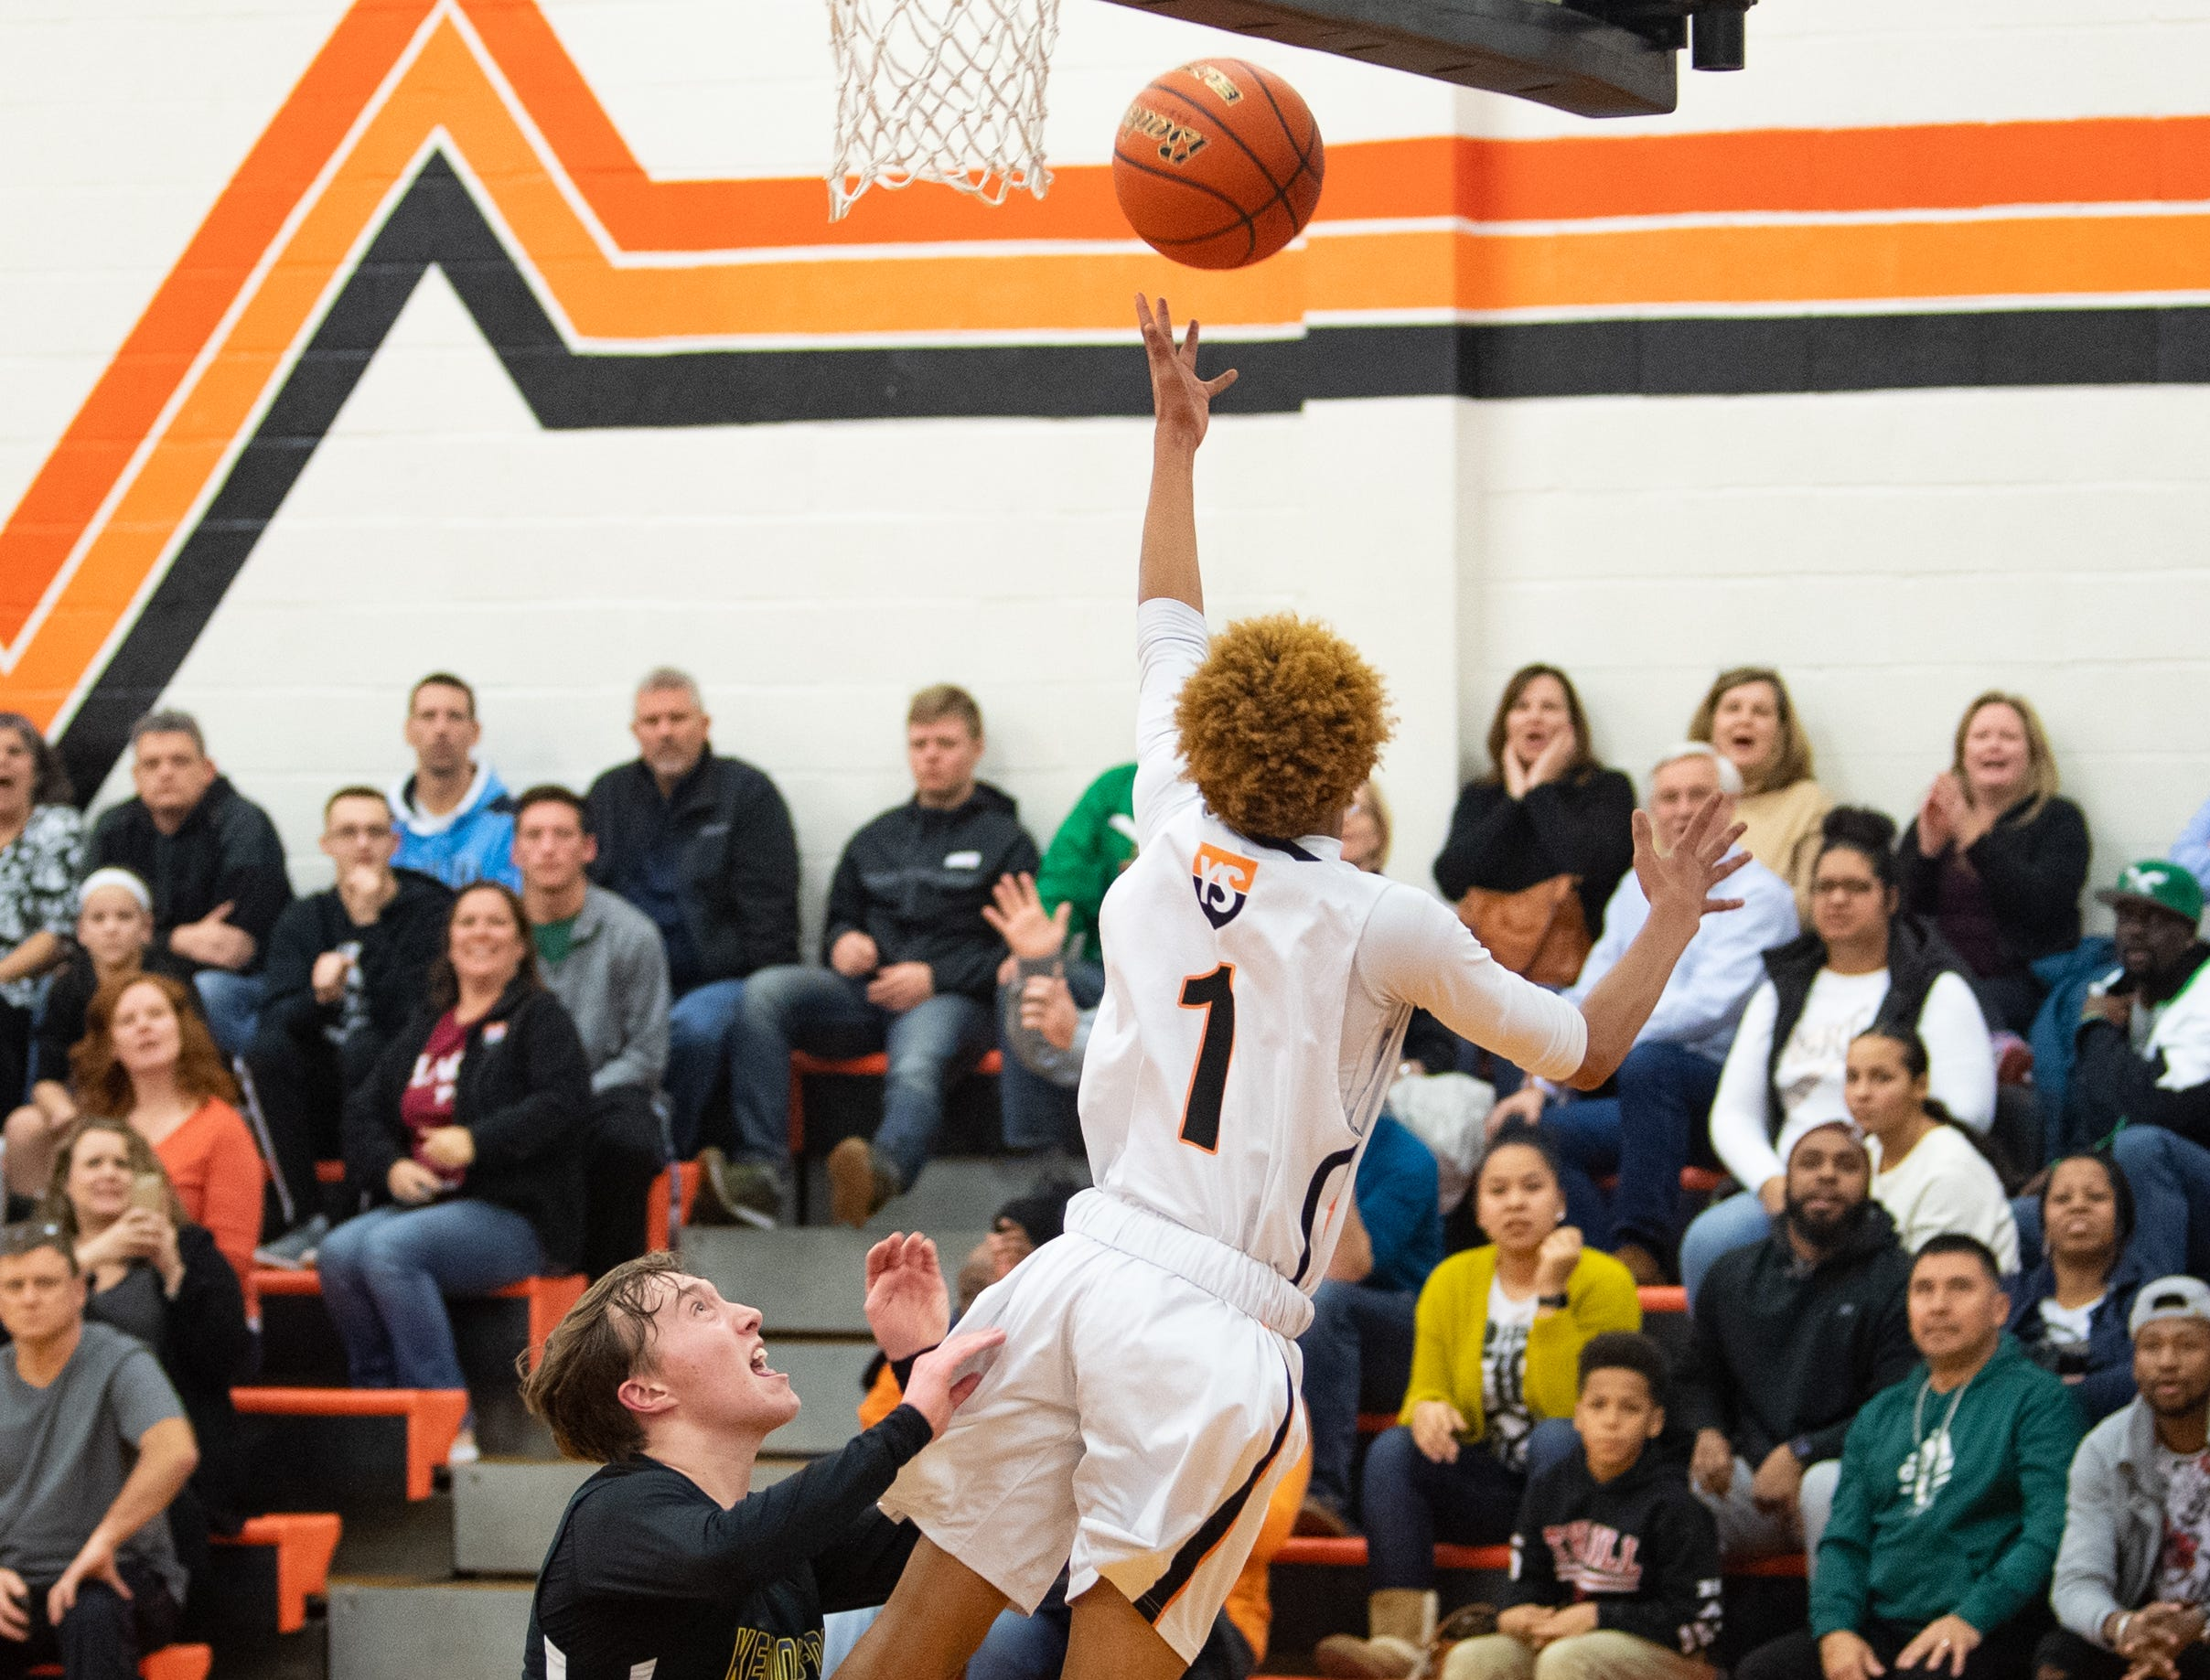 Cedric Walker (1) lays the ball up during the boys' basketball game between York Suburban and Kennard-Dale at York Suburban High School on January, 4, 2019. The Rams beat the Trojans 65 to 63 in overtime.